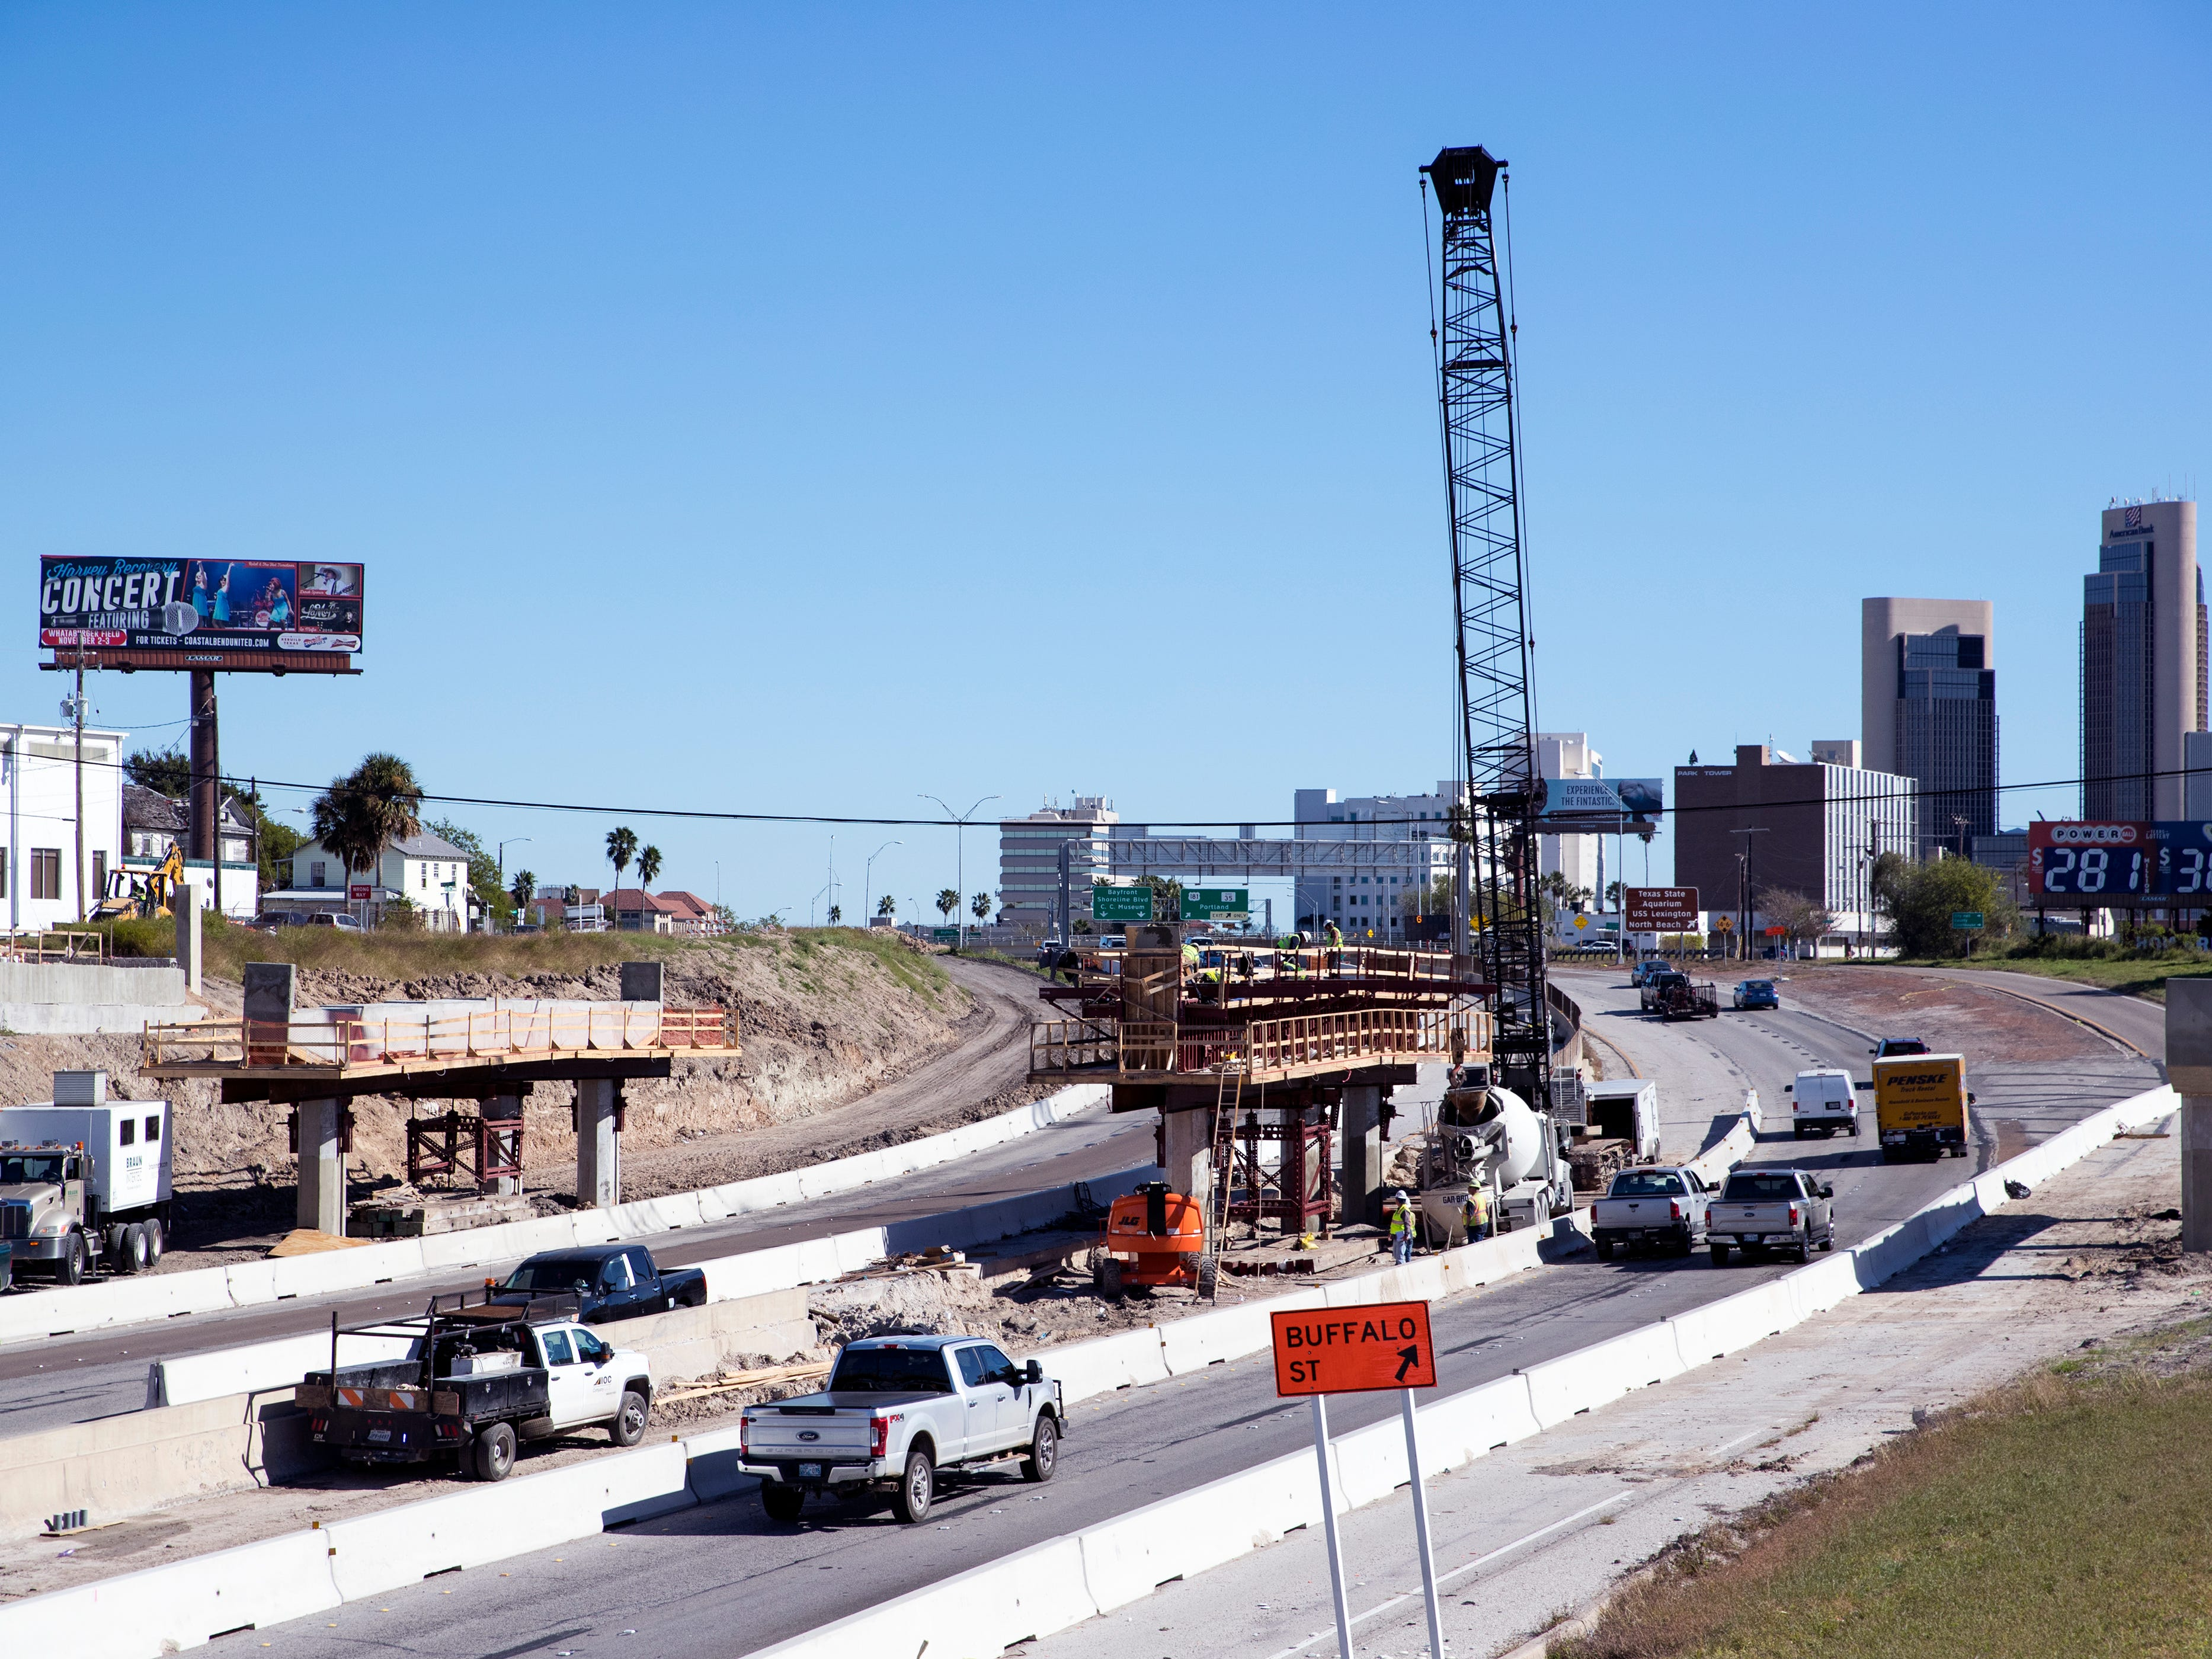 Construction crews work on the new Harbor Bridge project on Interstate-37 on Friday, December 21, 2018.